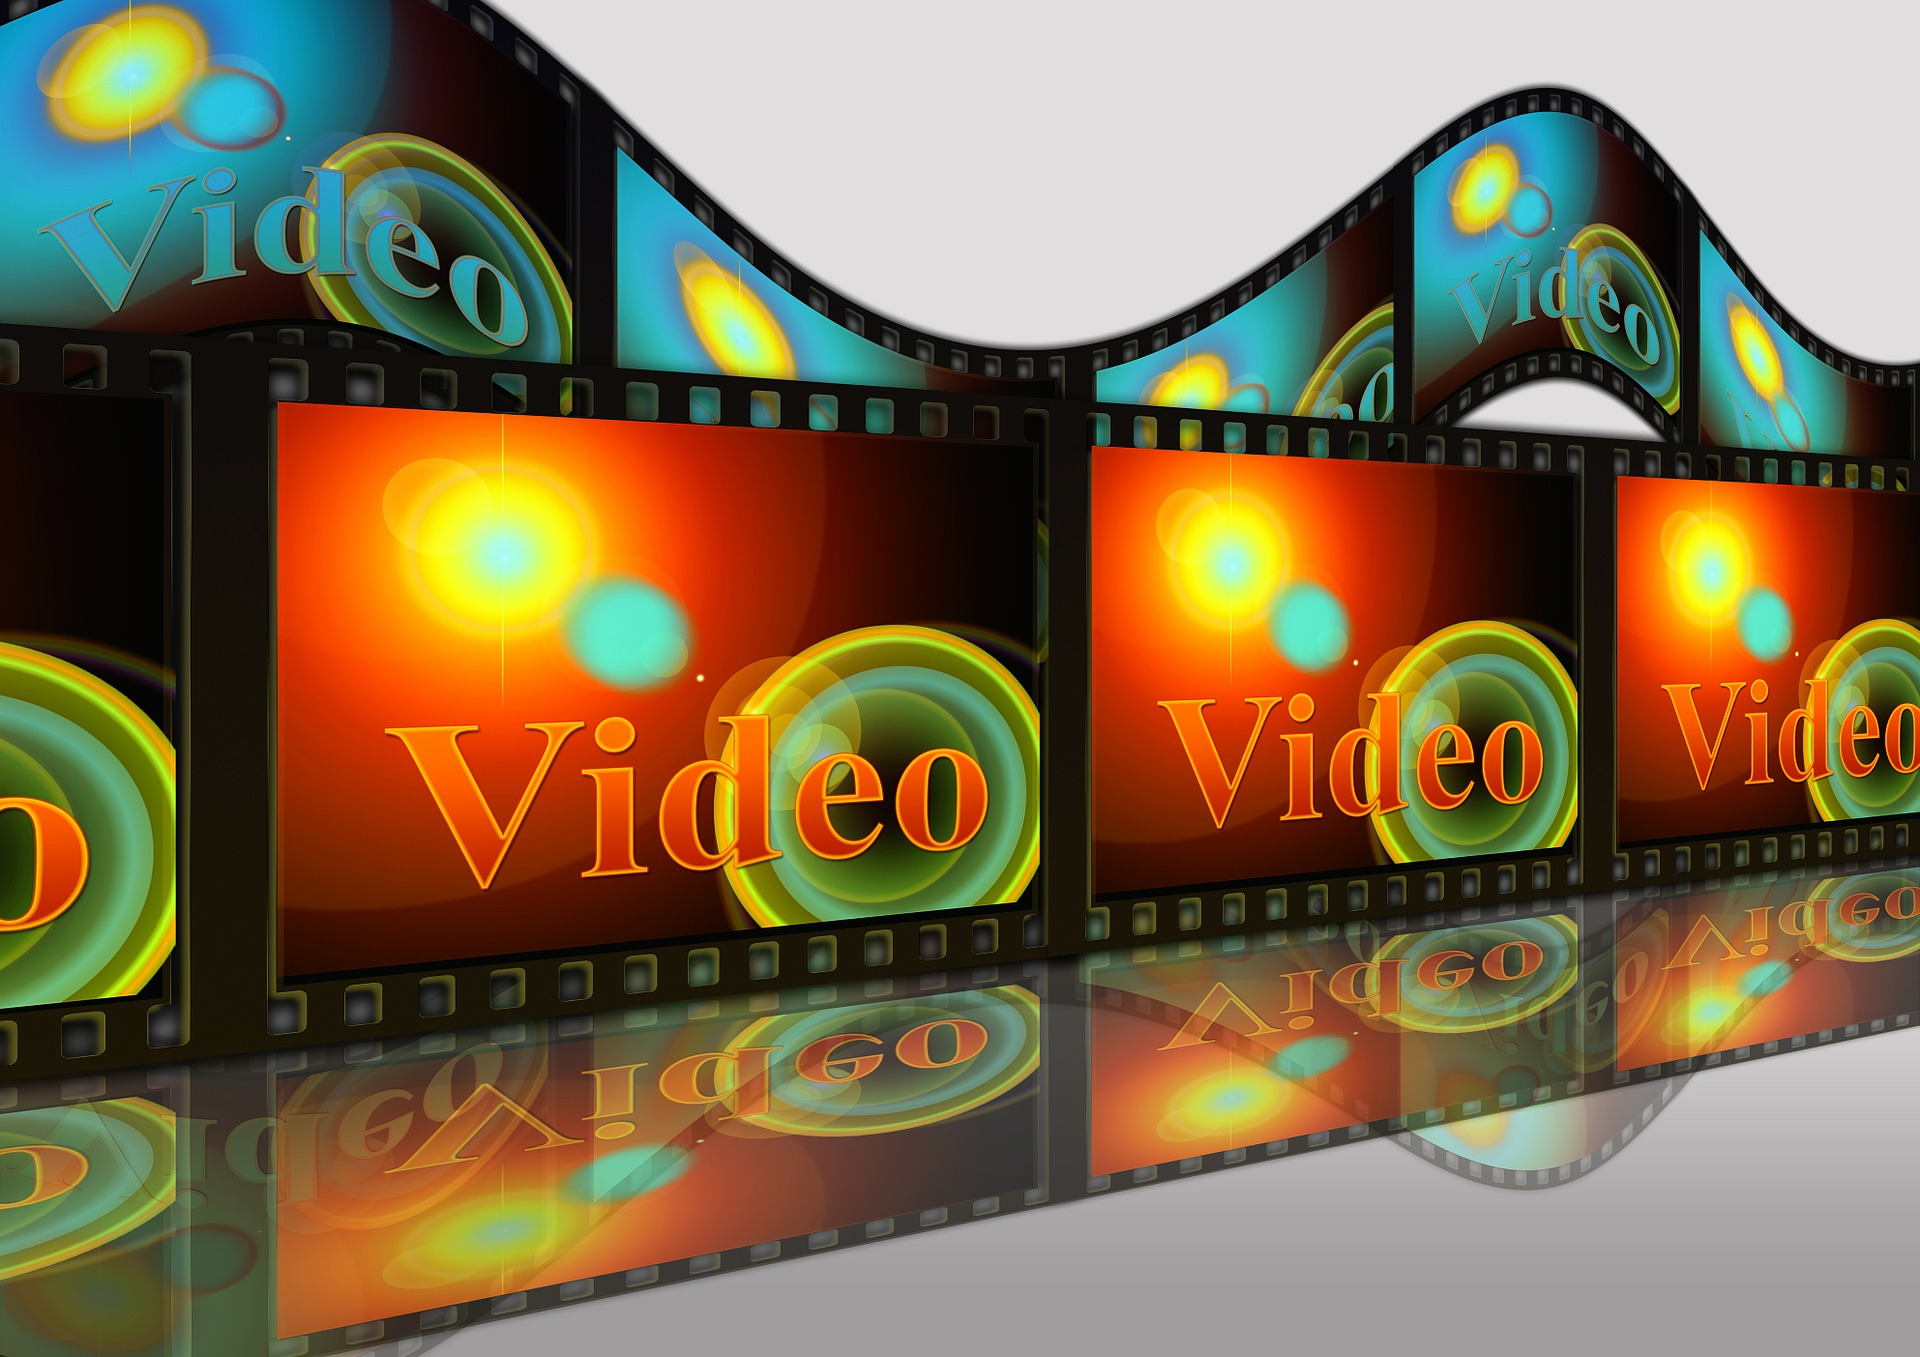 Viral Vids for Boosting Business